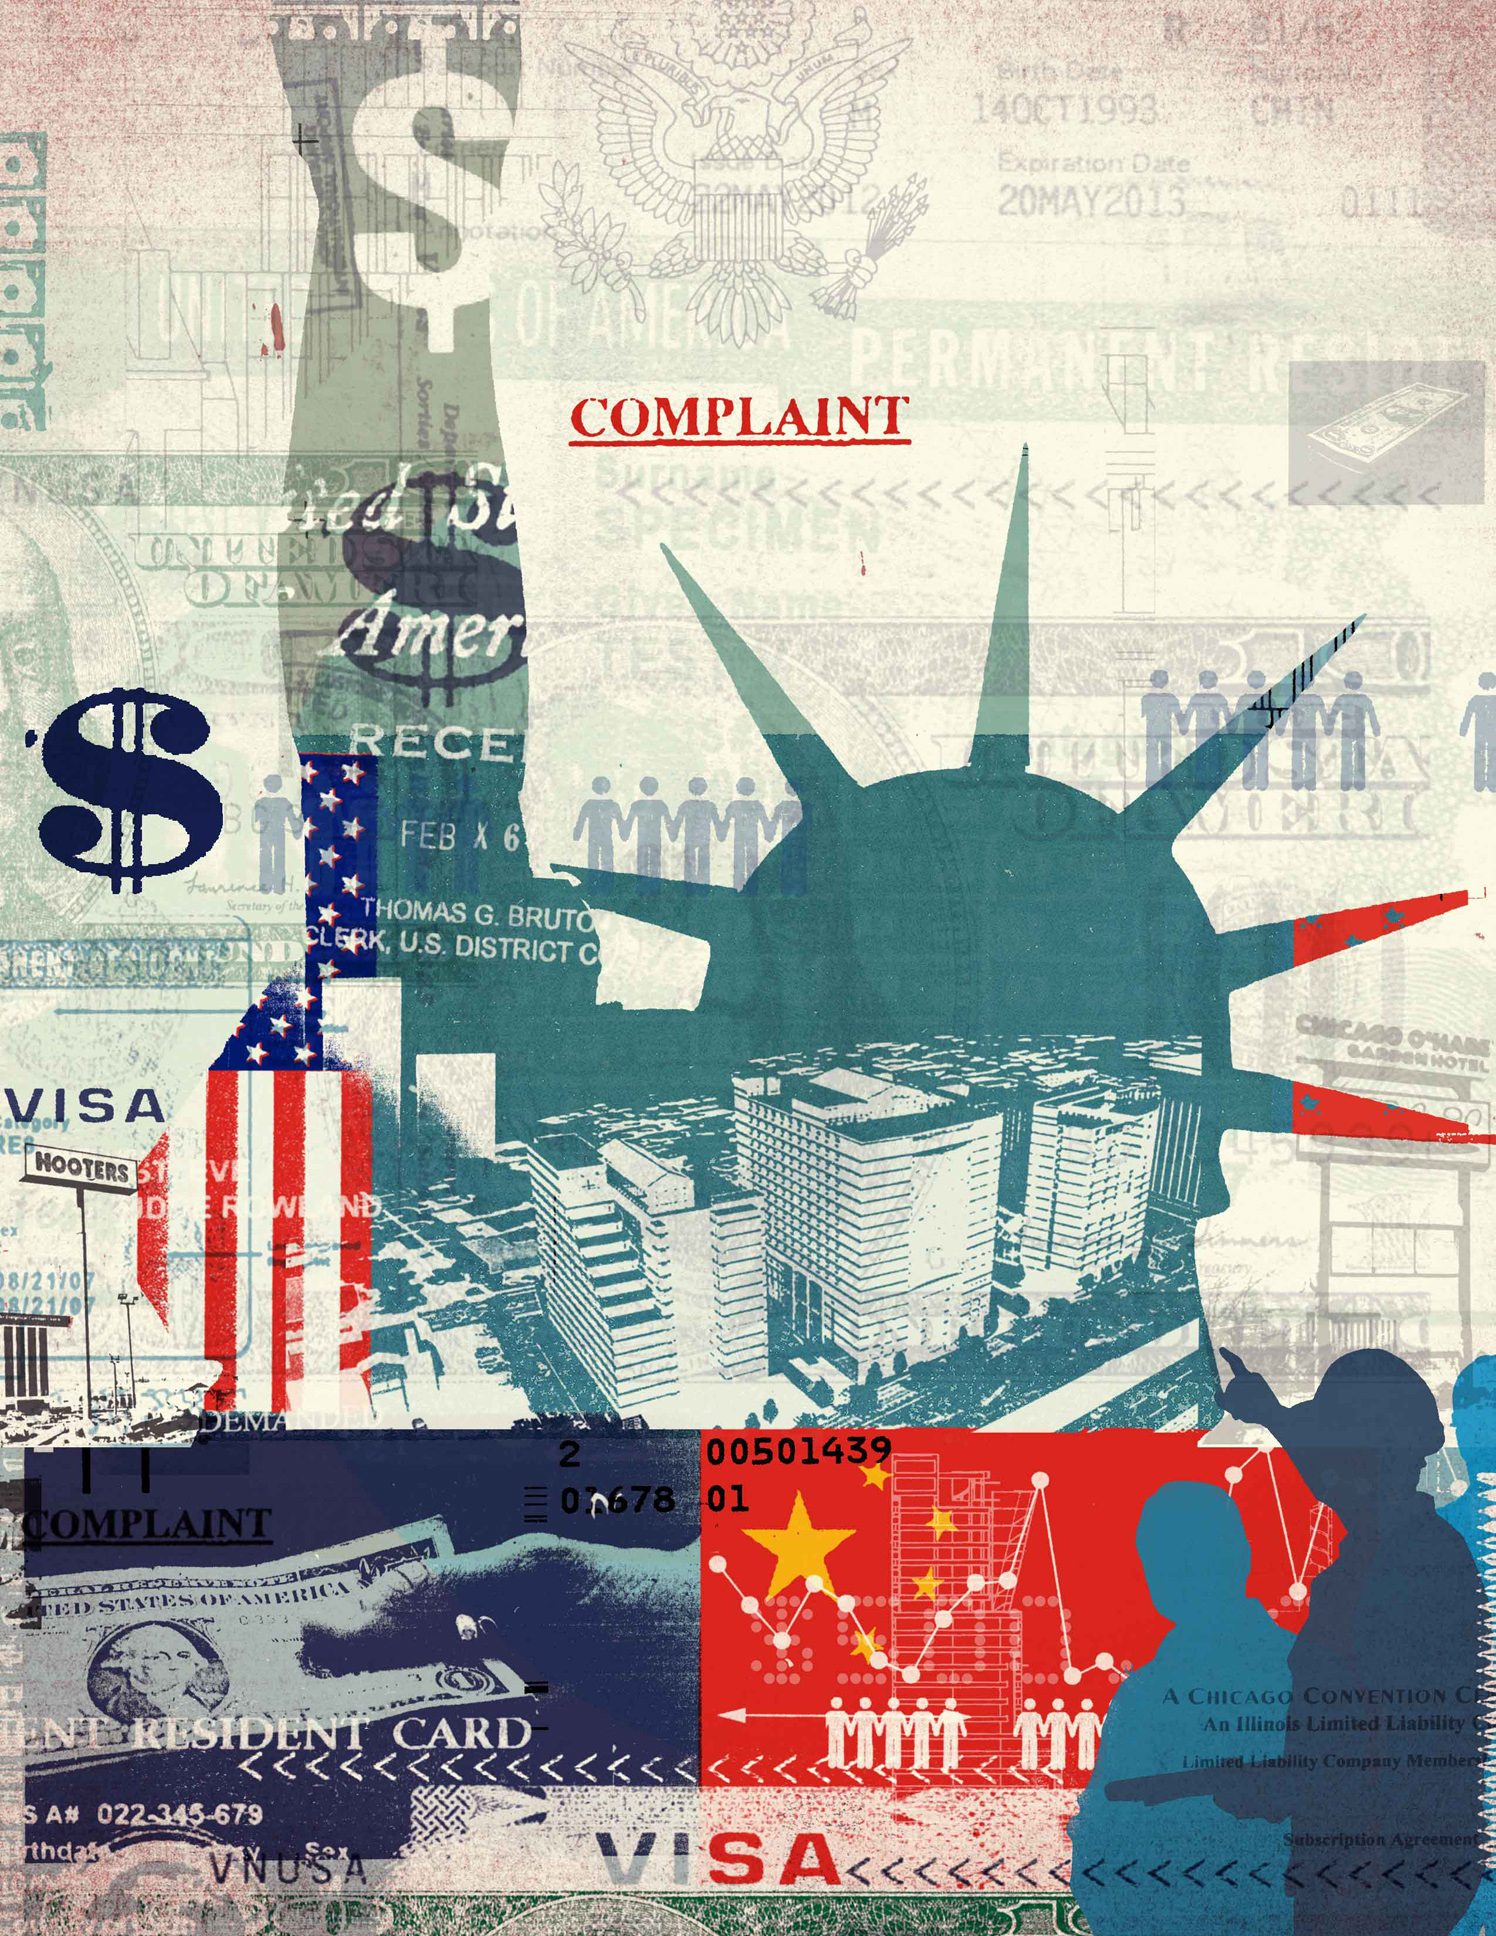 US Visa / Fortune Magazine